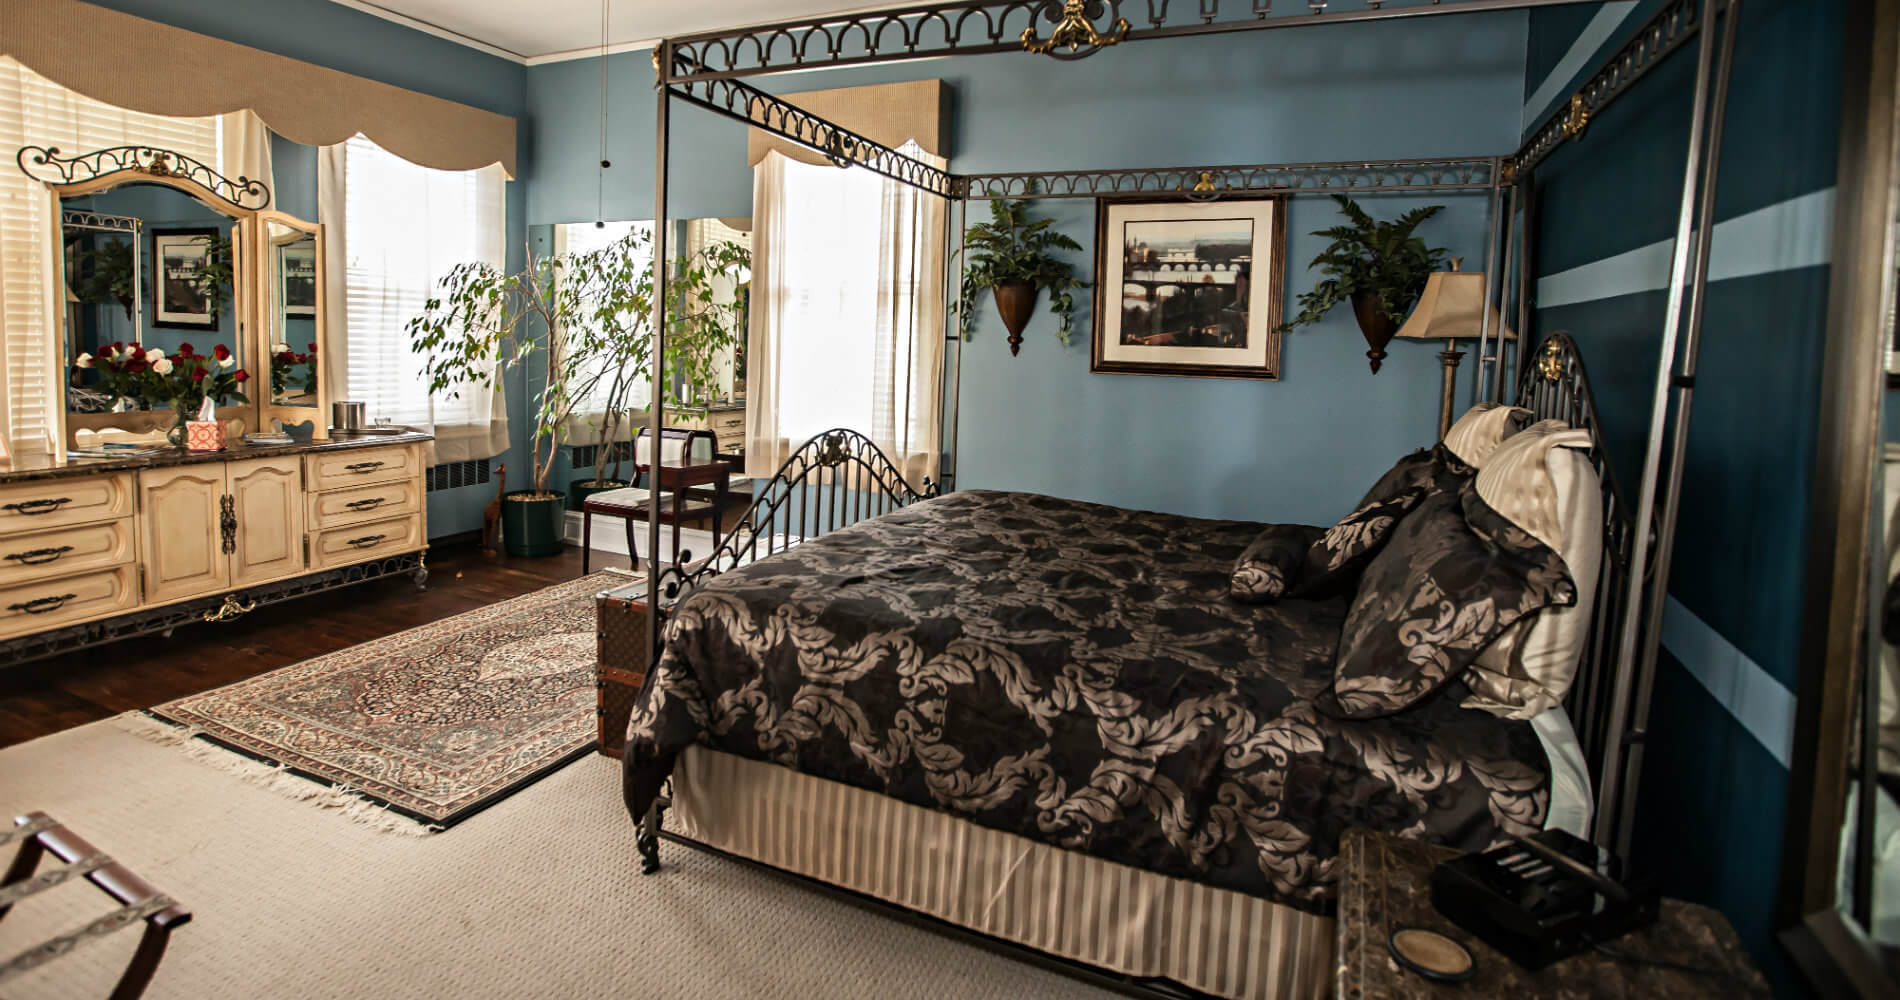 view of a king sized wrought iron canopy bed with brown comforter